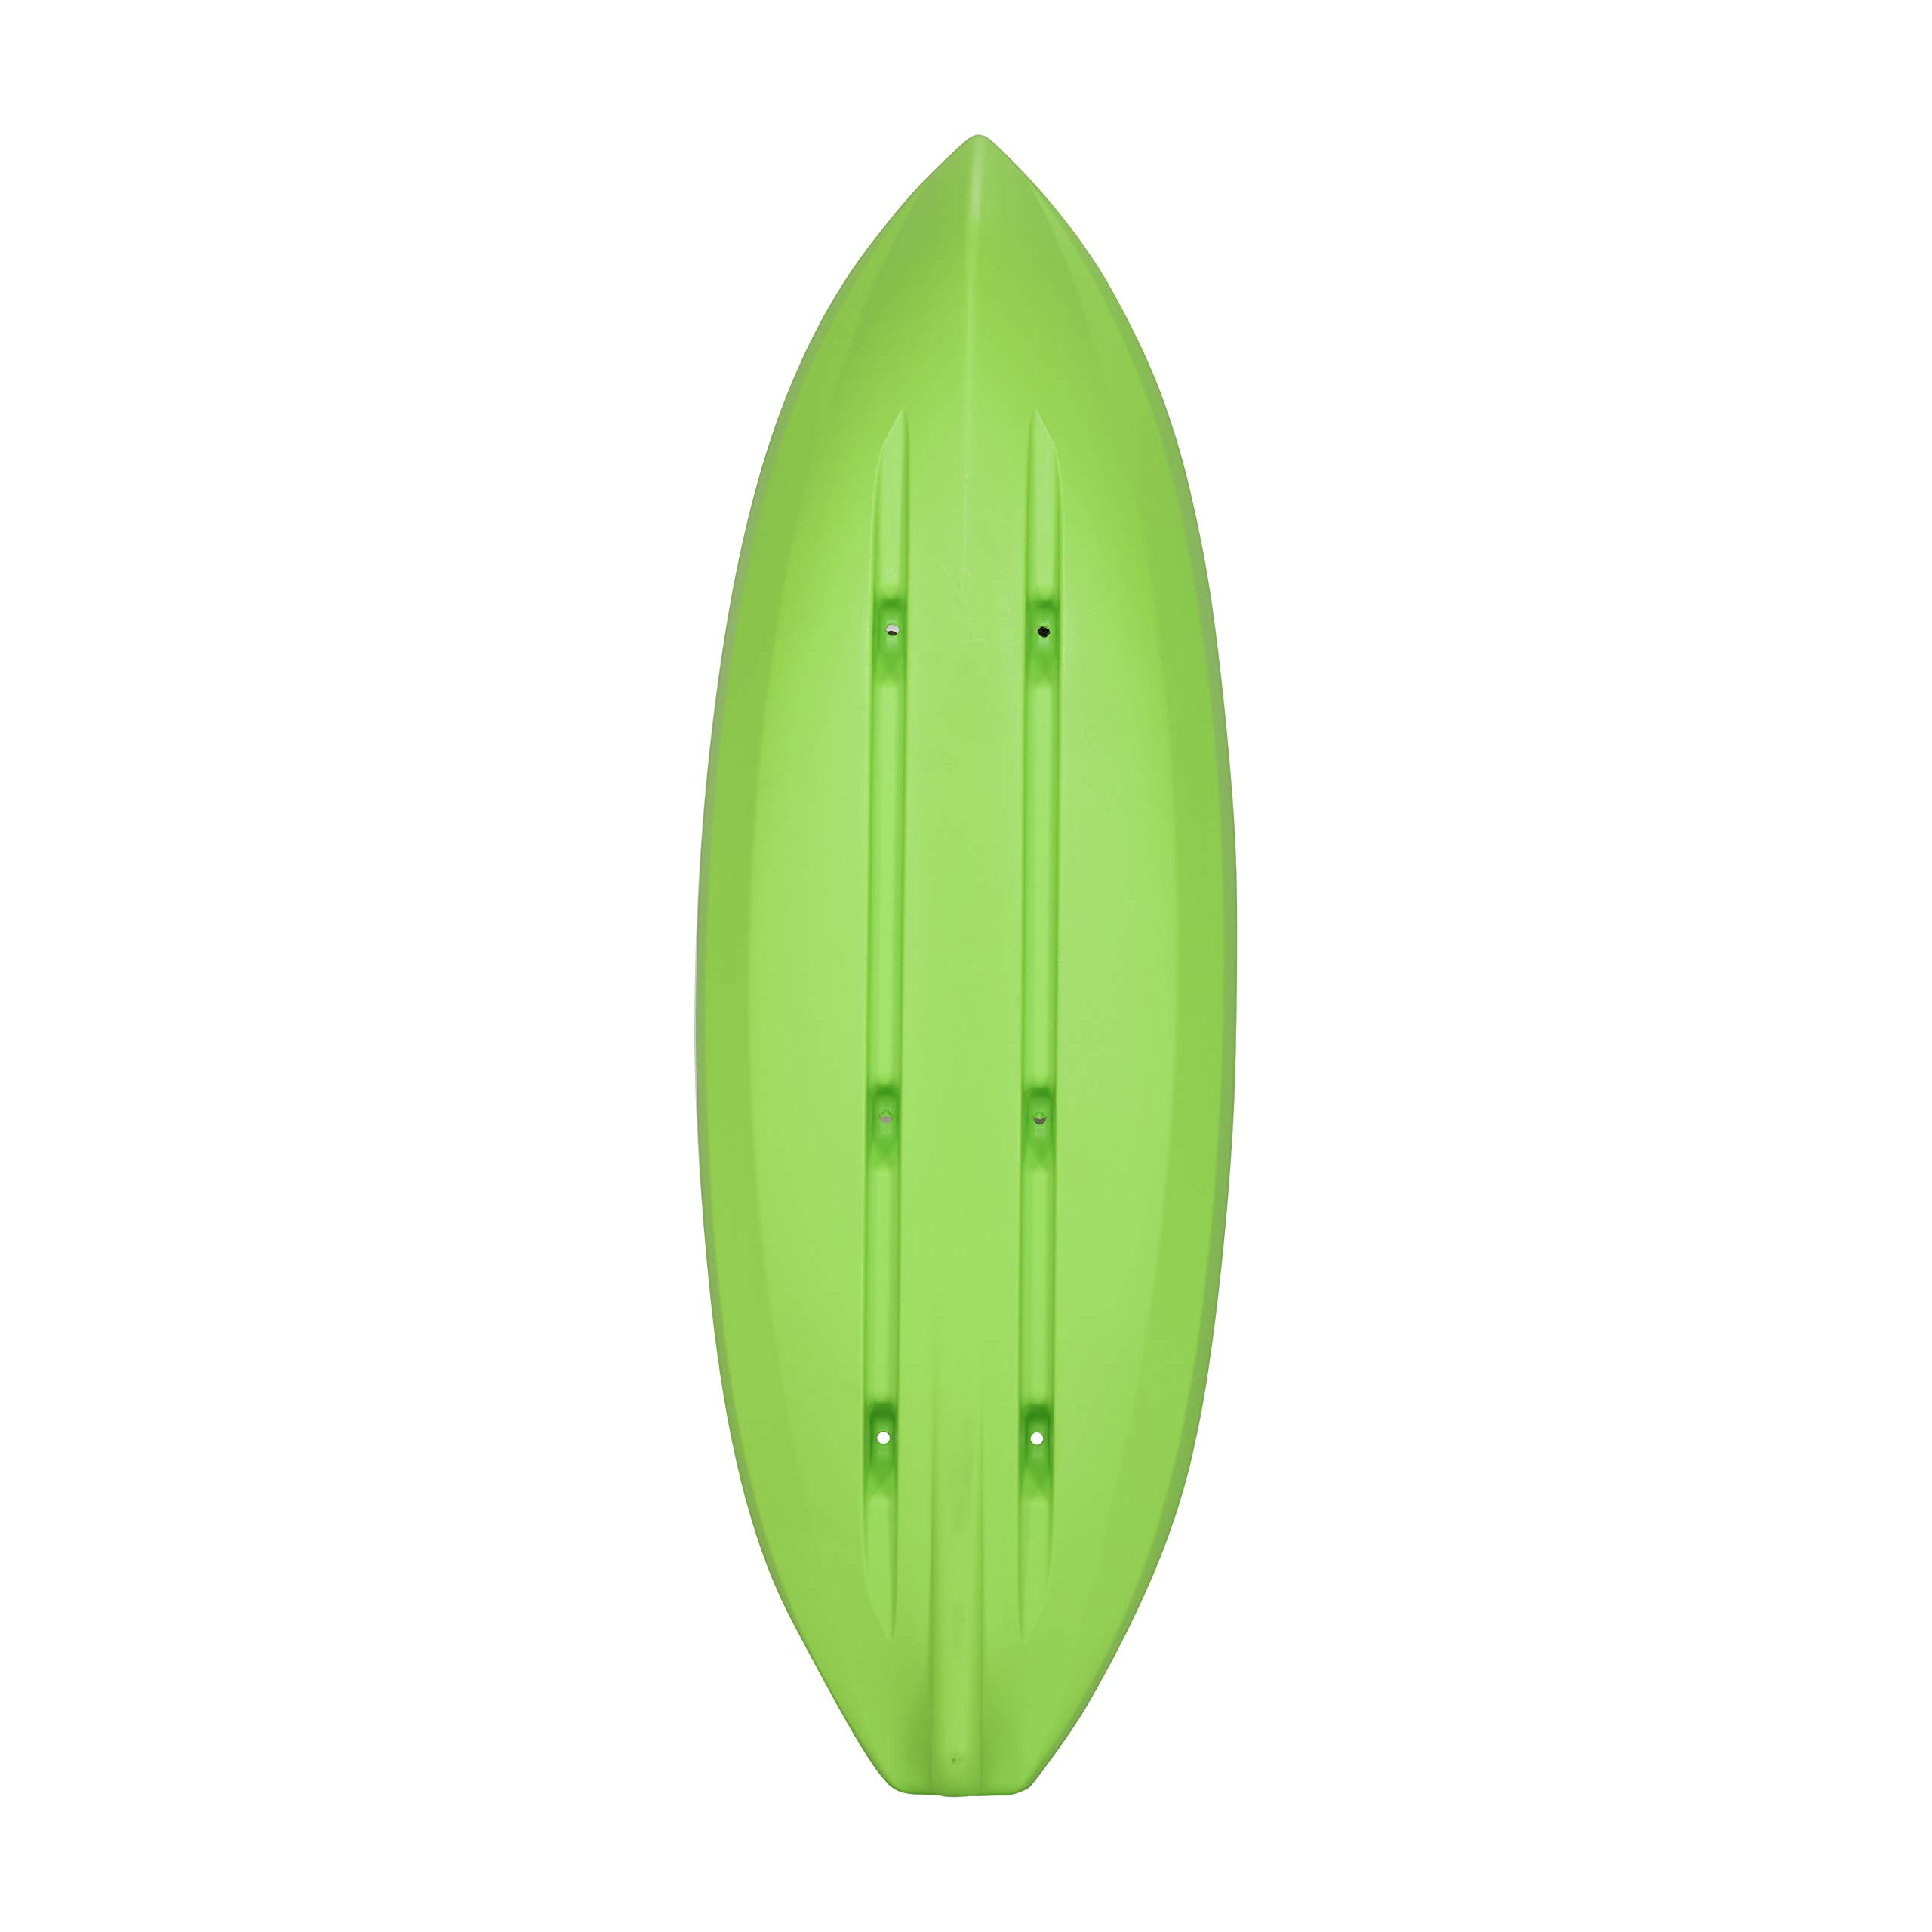 Emotion 90245 Spitfire Sit-On-Top 8 Foot Kayak, Green by Lifetime